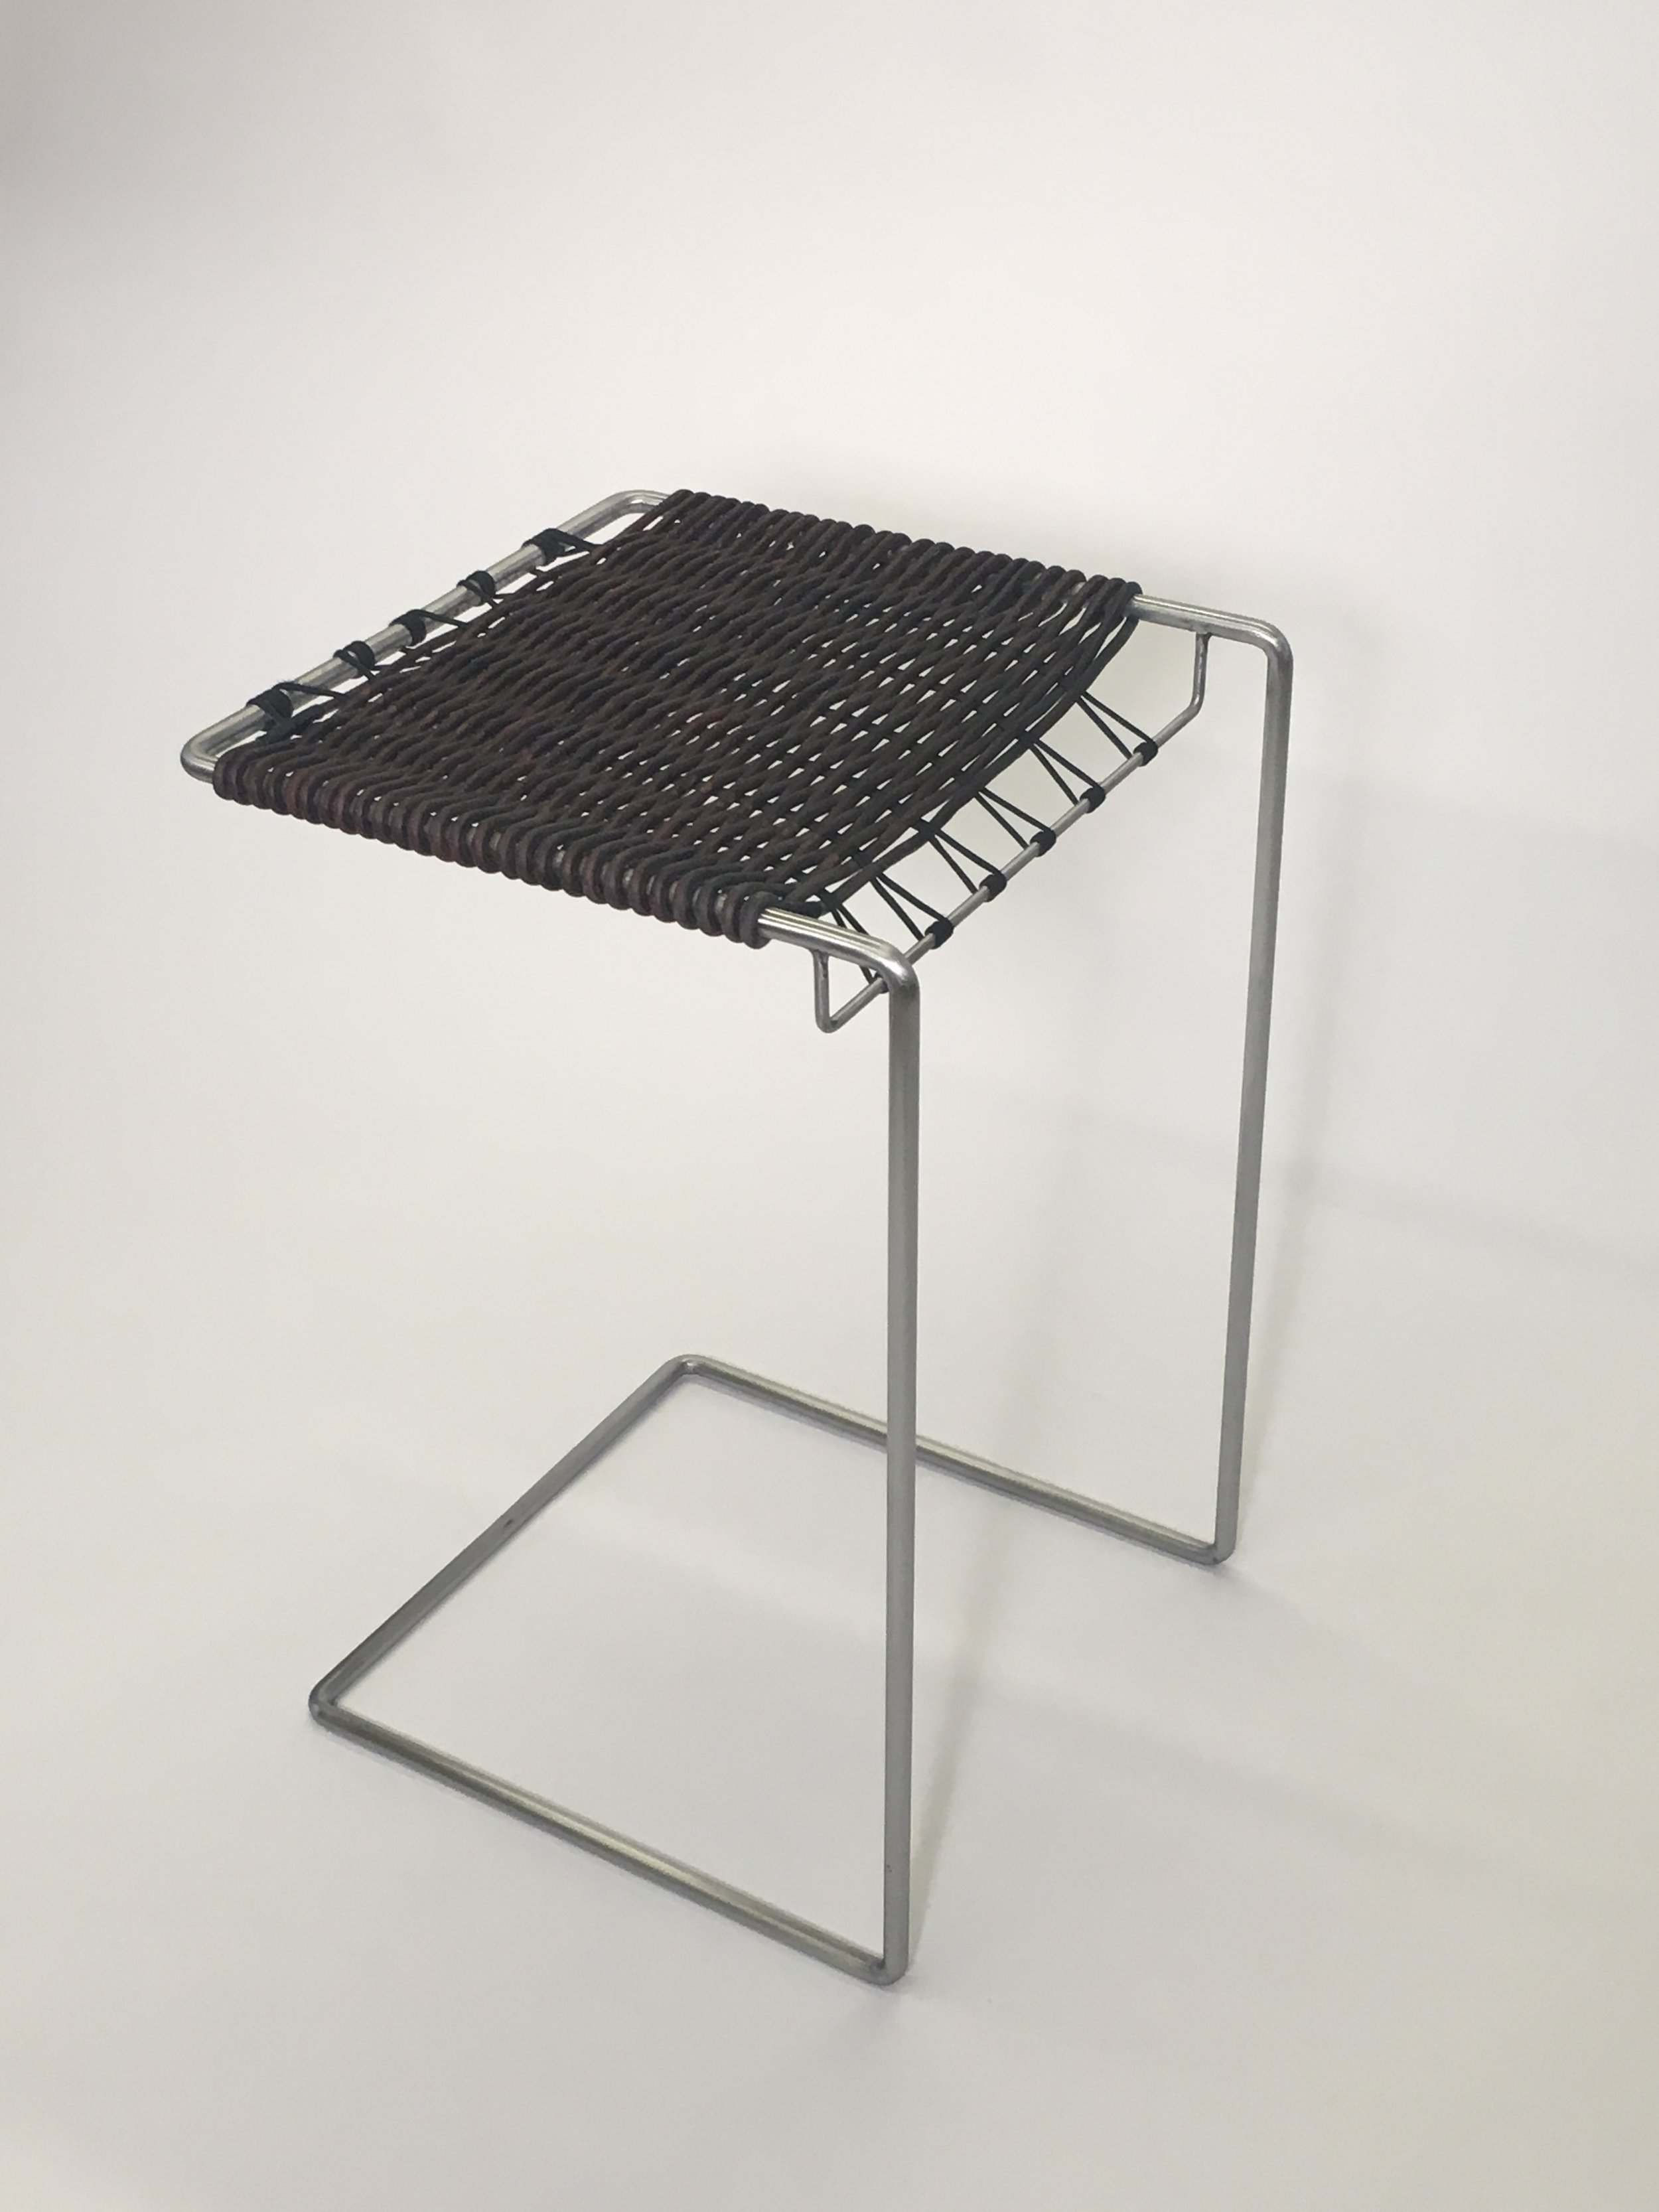 Bent steel and woven leather table